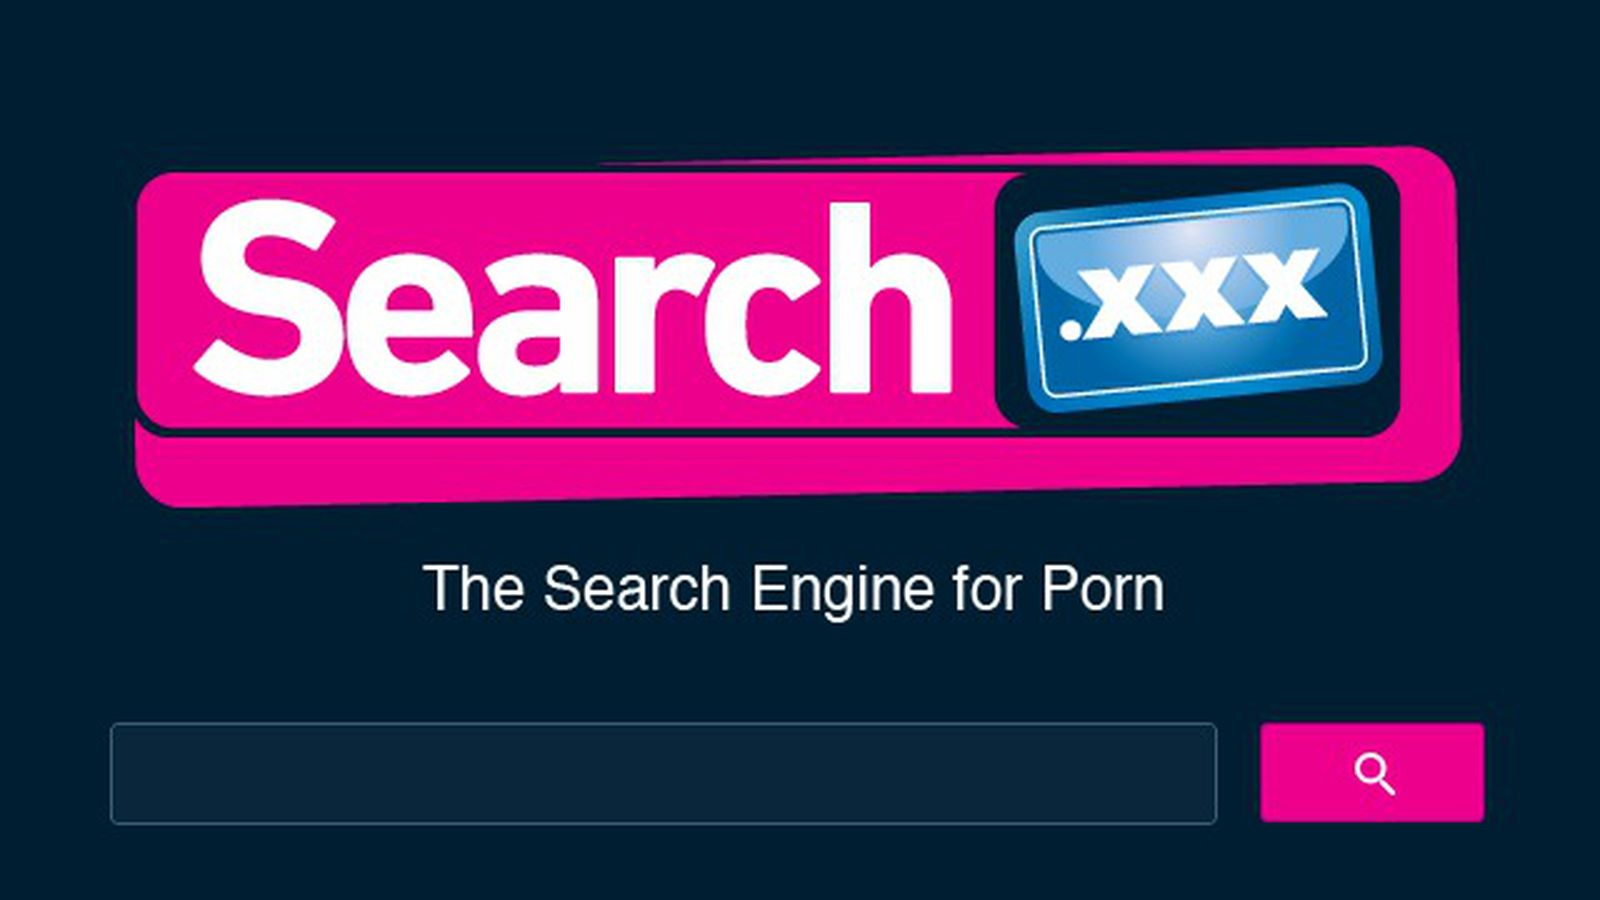 Search for porn